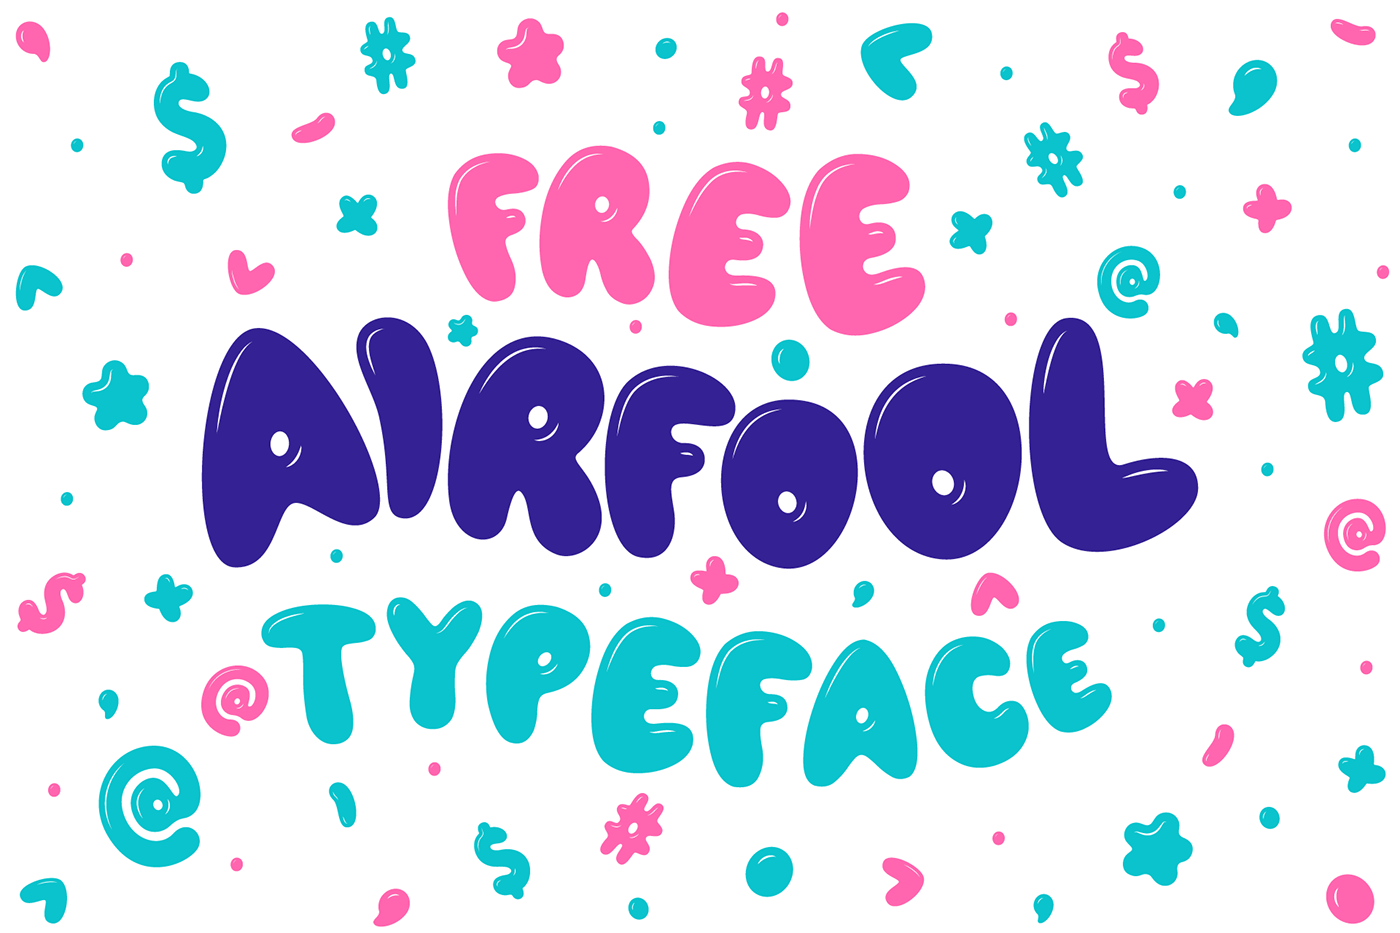 Free Download: Airfool Typeface